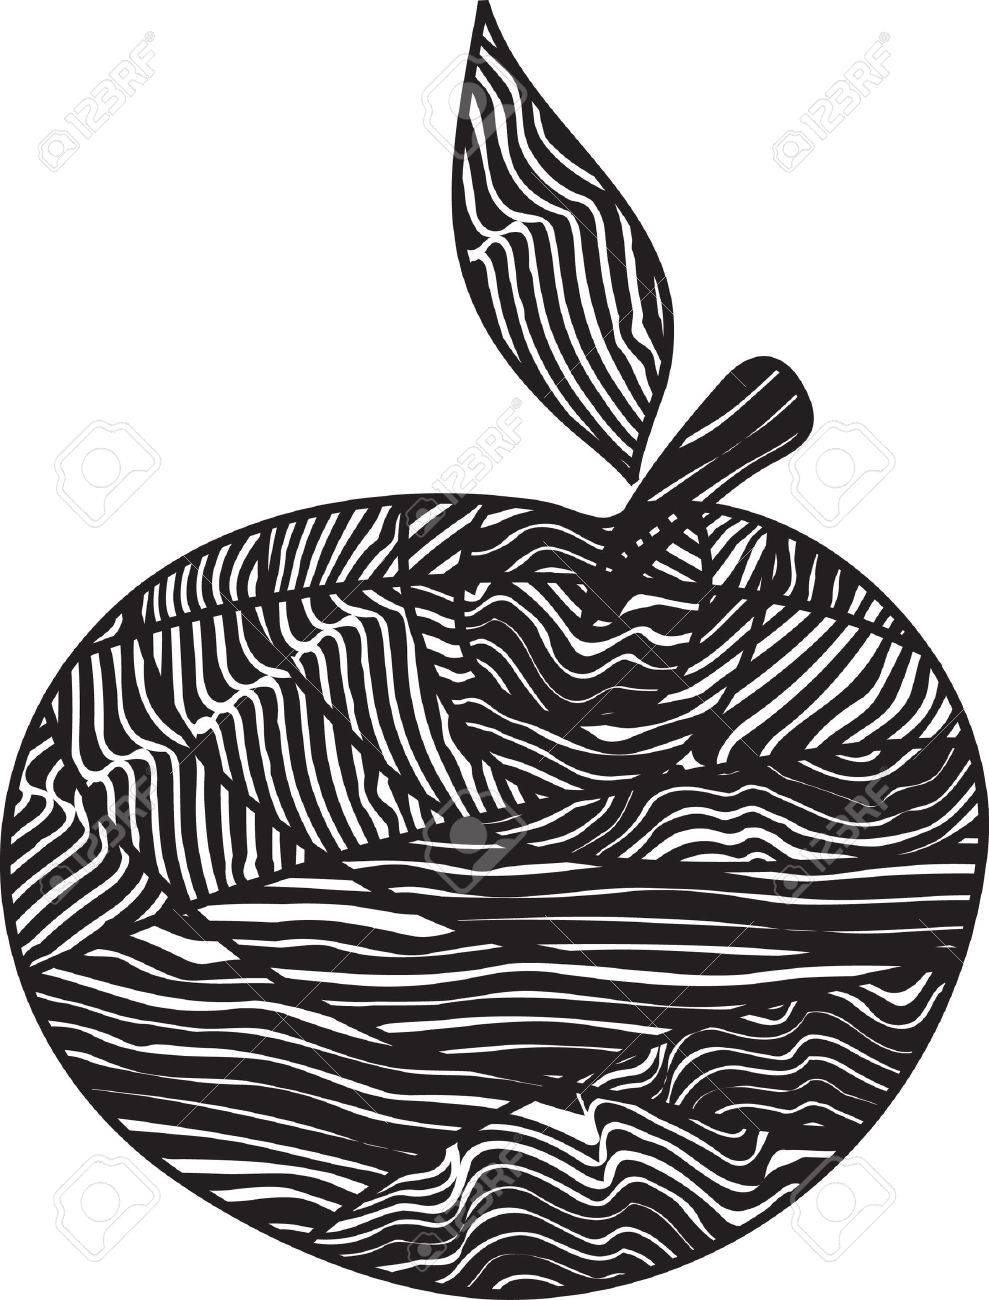 Stylized apple Stock Vector - 3774655